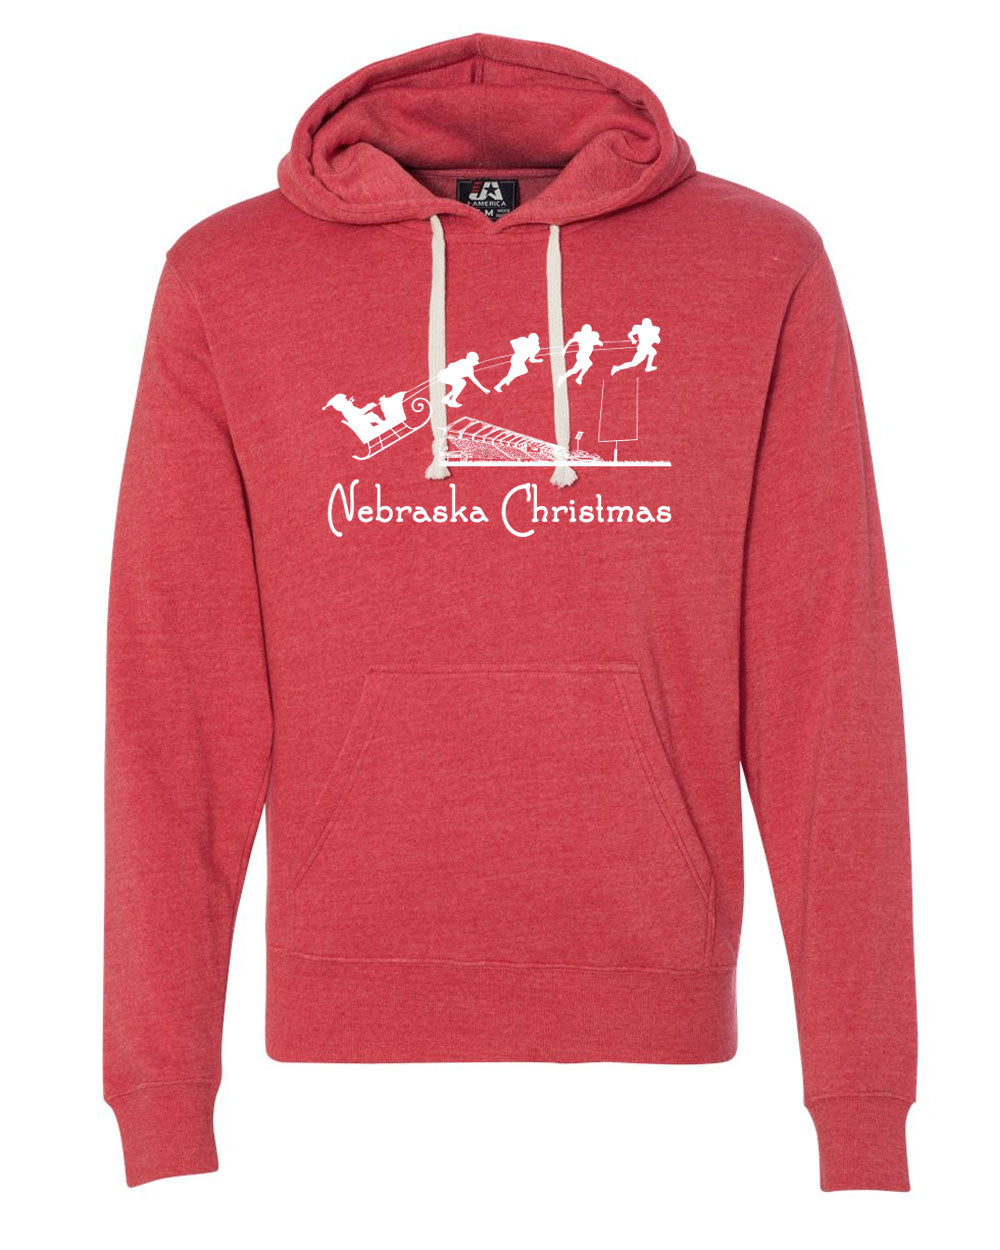 Nebraska Christmas - Sweatshirt